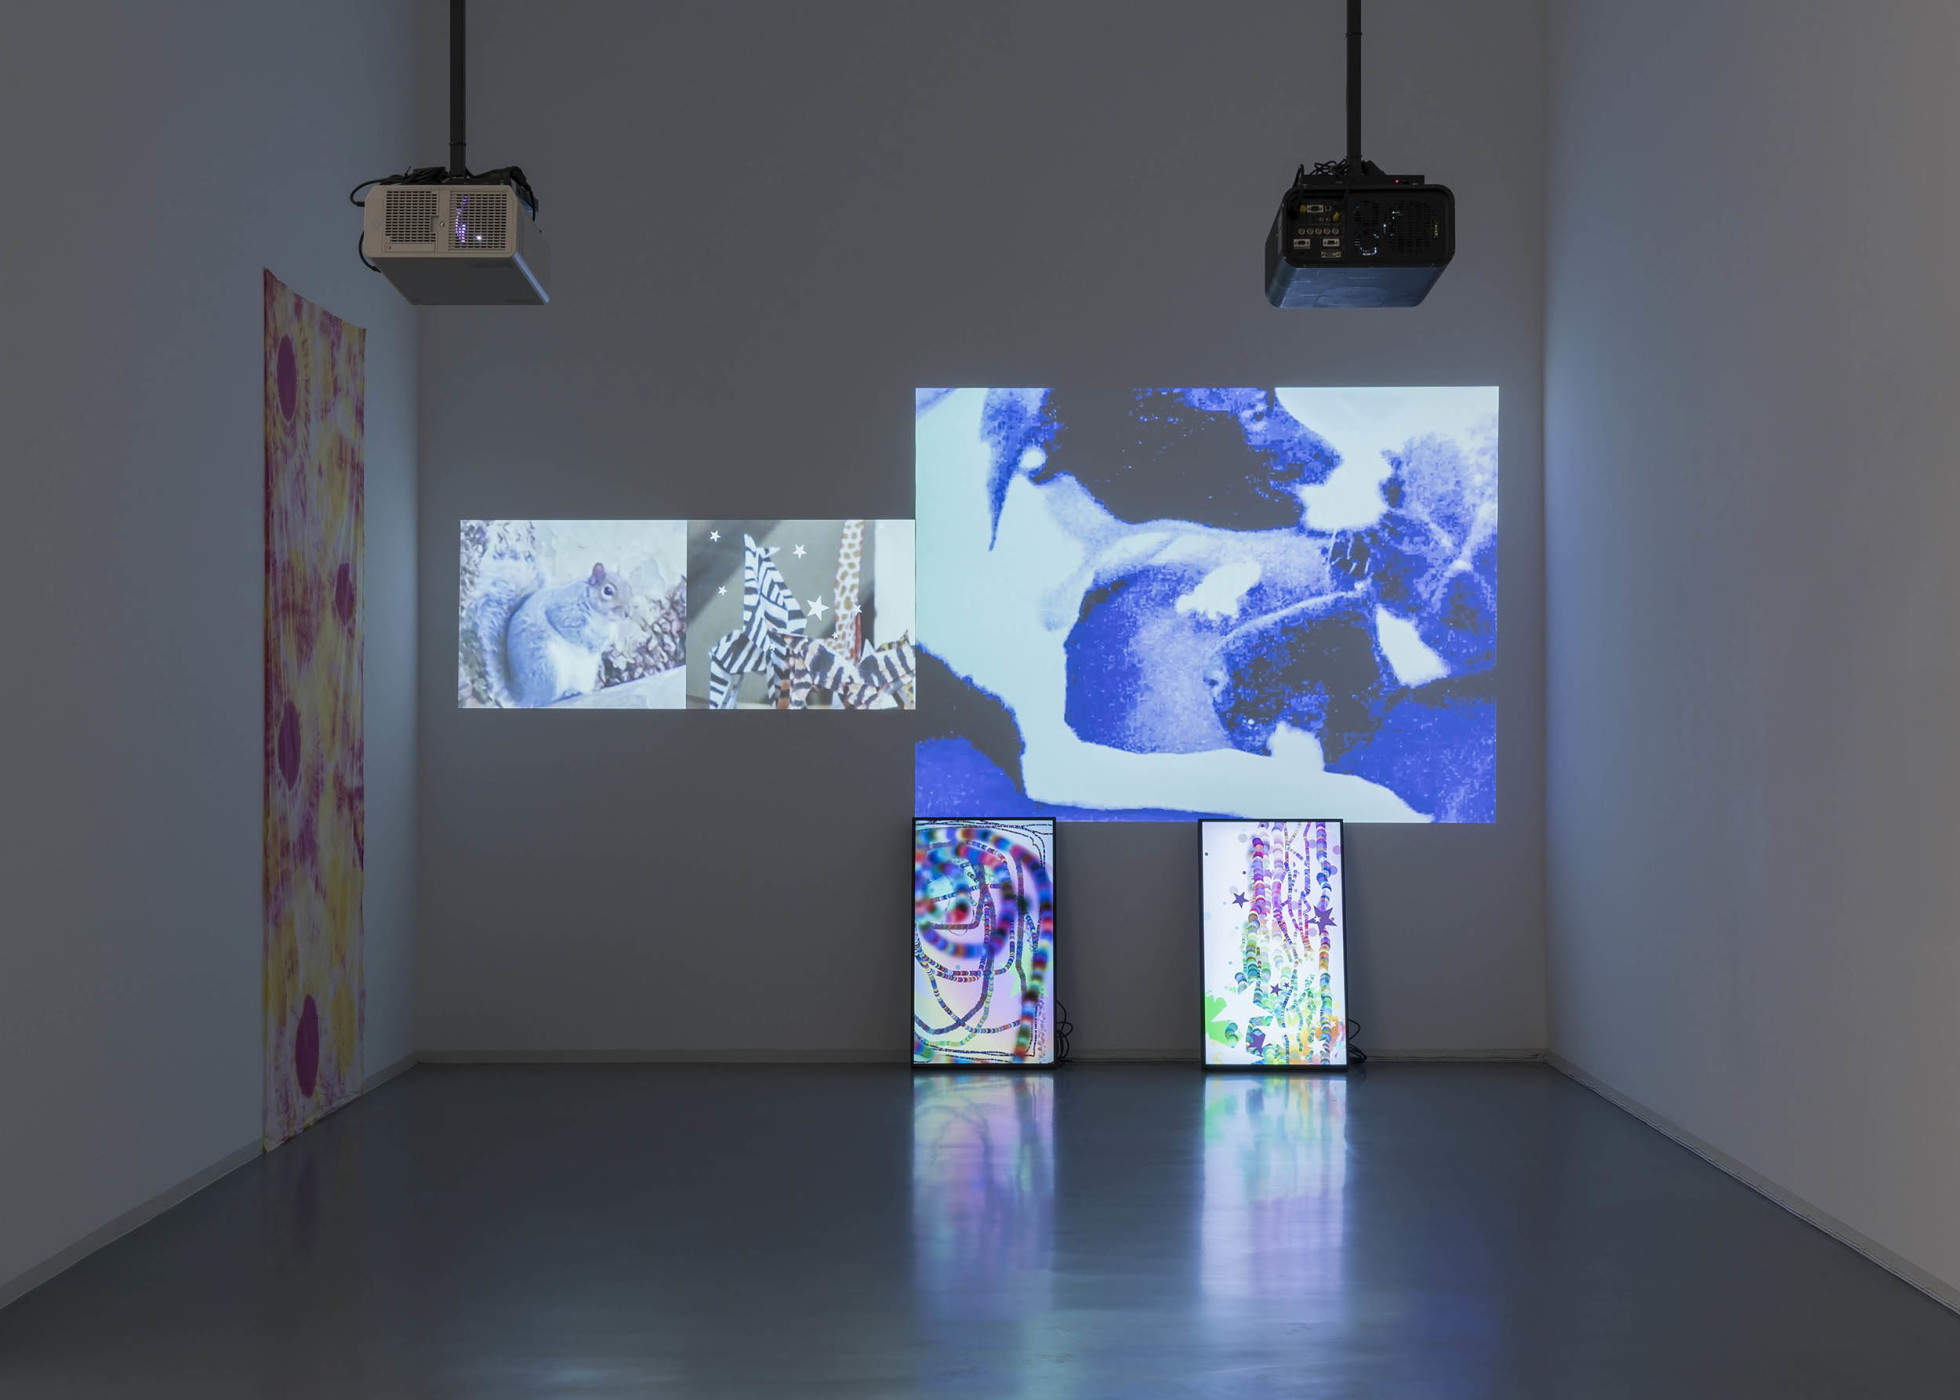 "<div class=""artwork_caption""><p>Installation view, Hilary Lloyd, Bonner Kunstverein, Bonn, 22 September – 19 November 2017</p></div>"